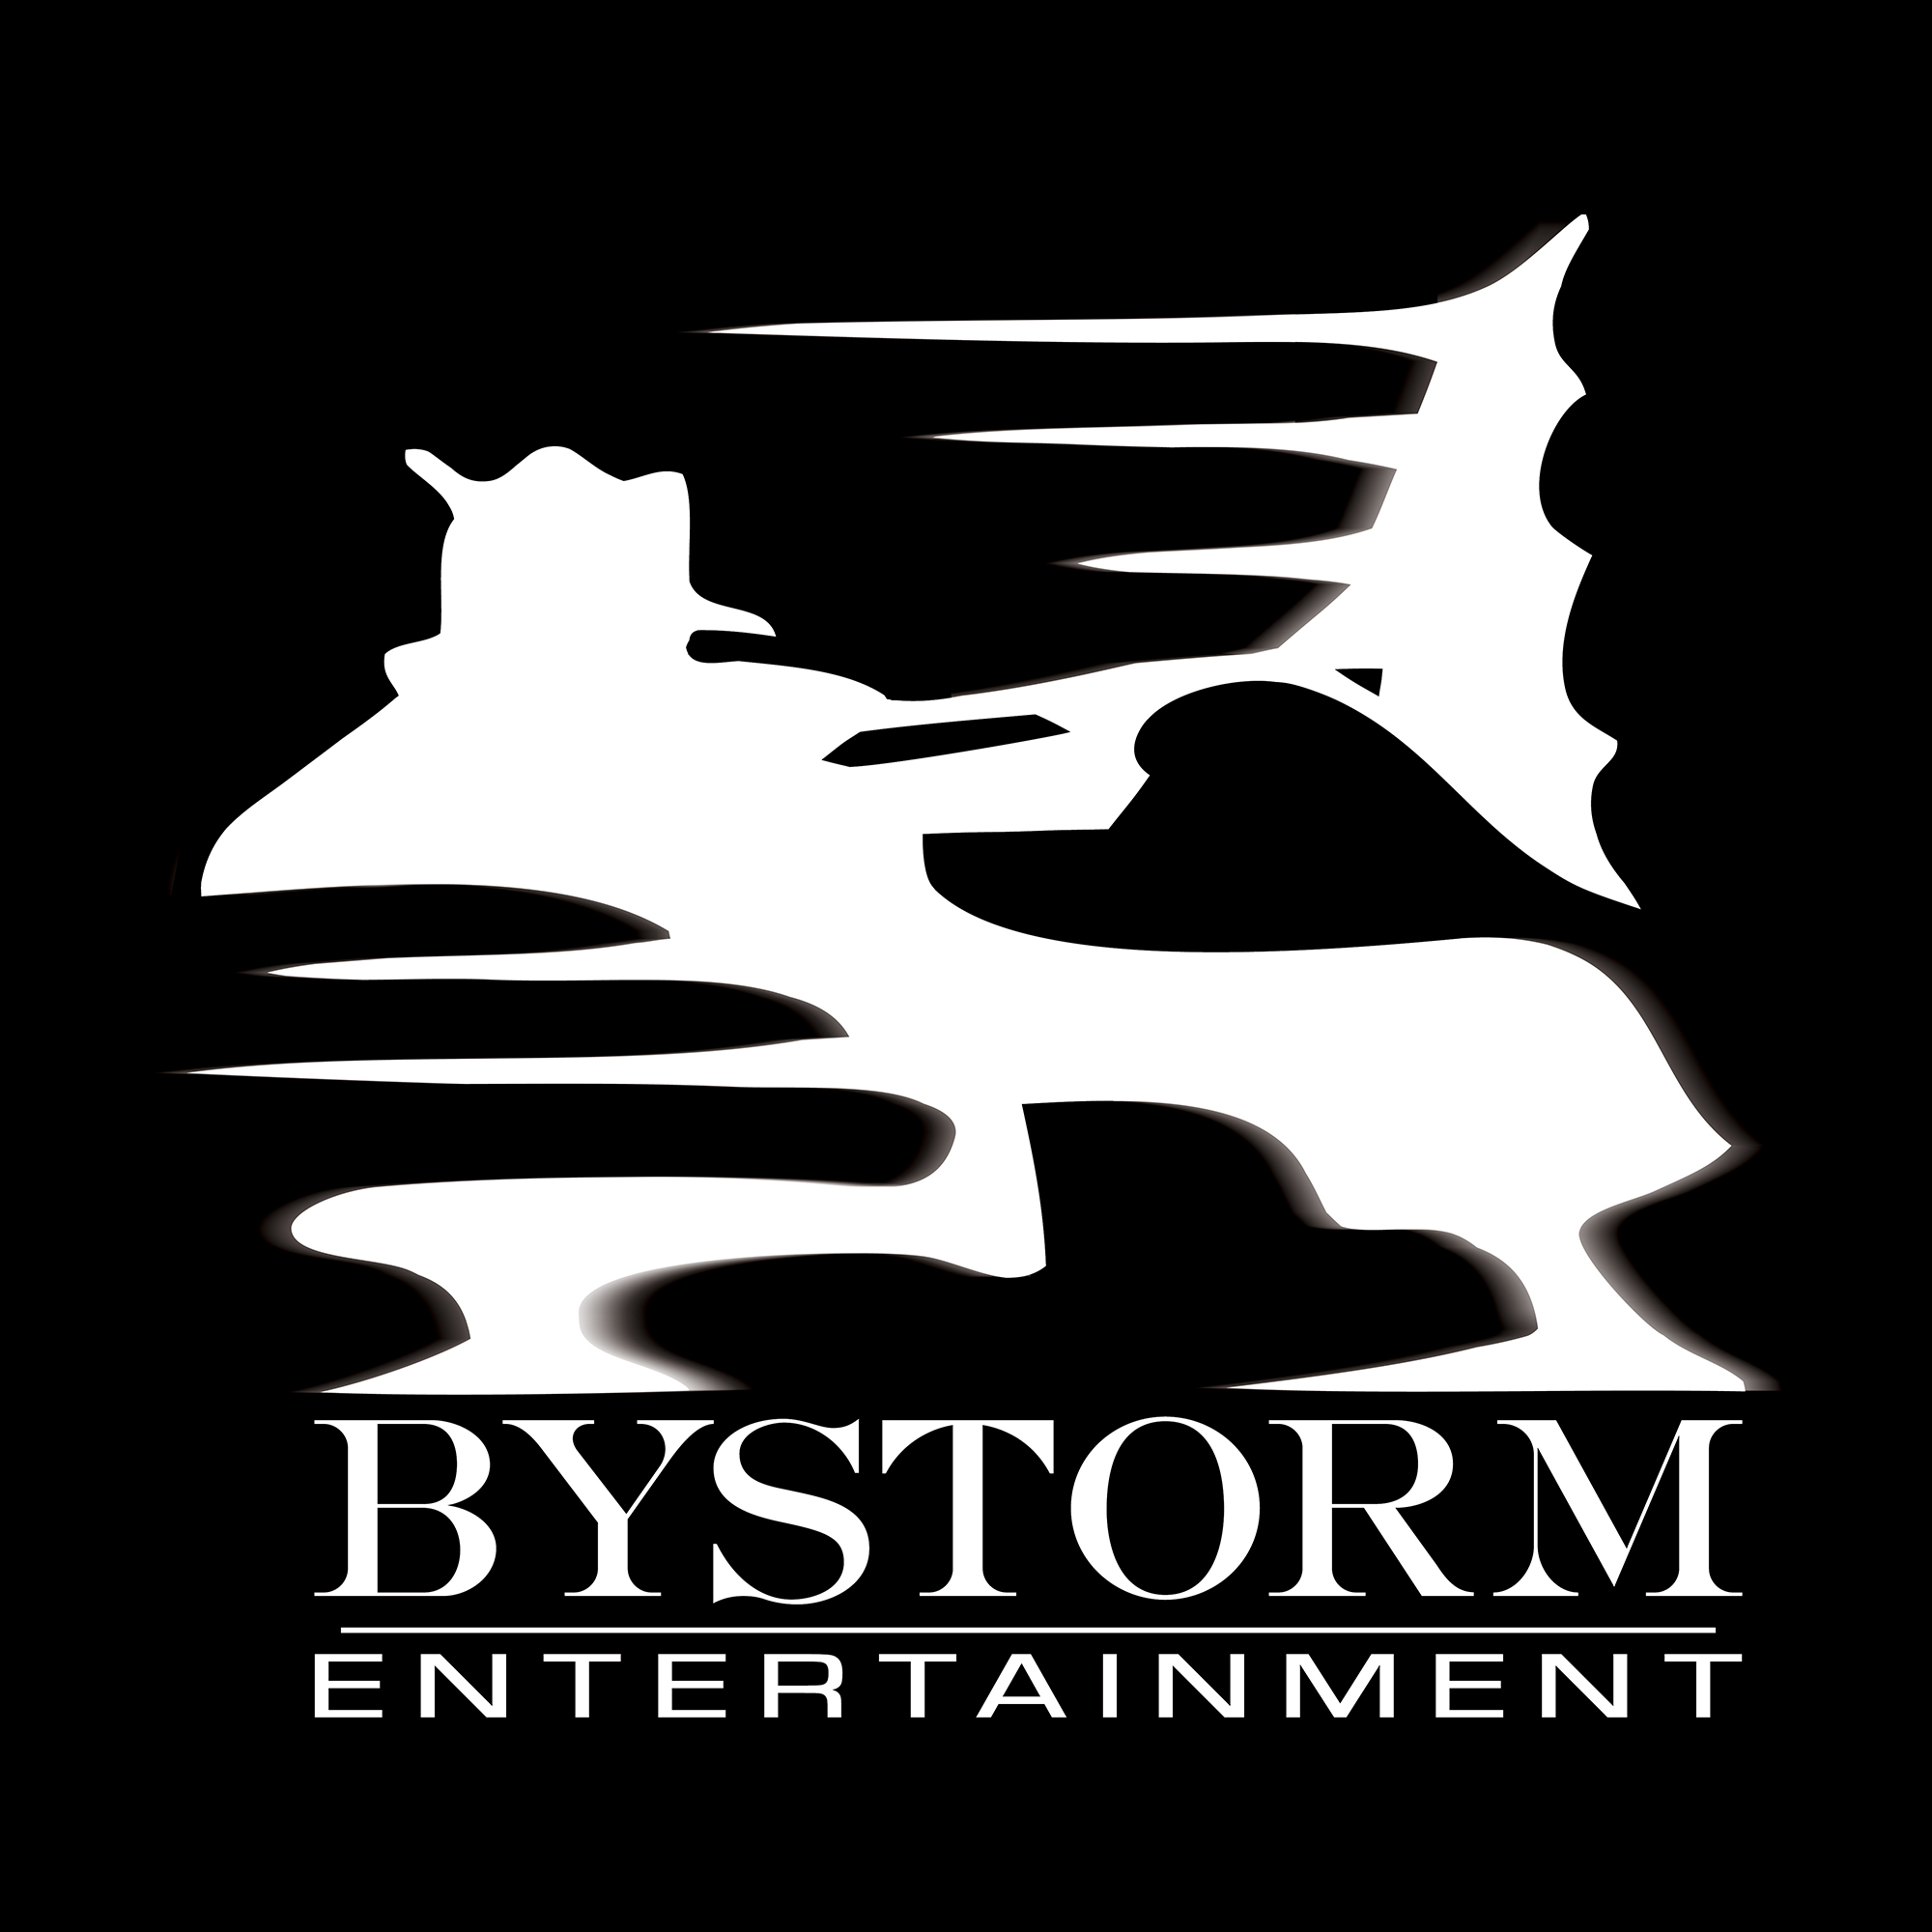 Bystorm Entertainment